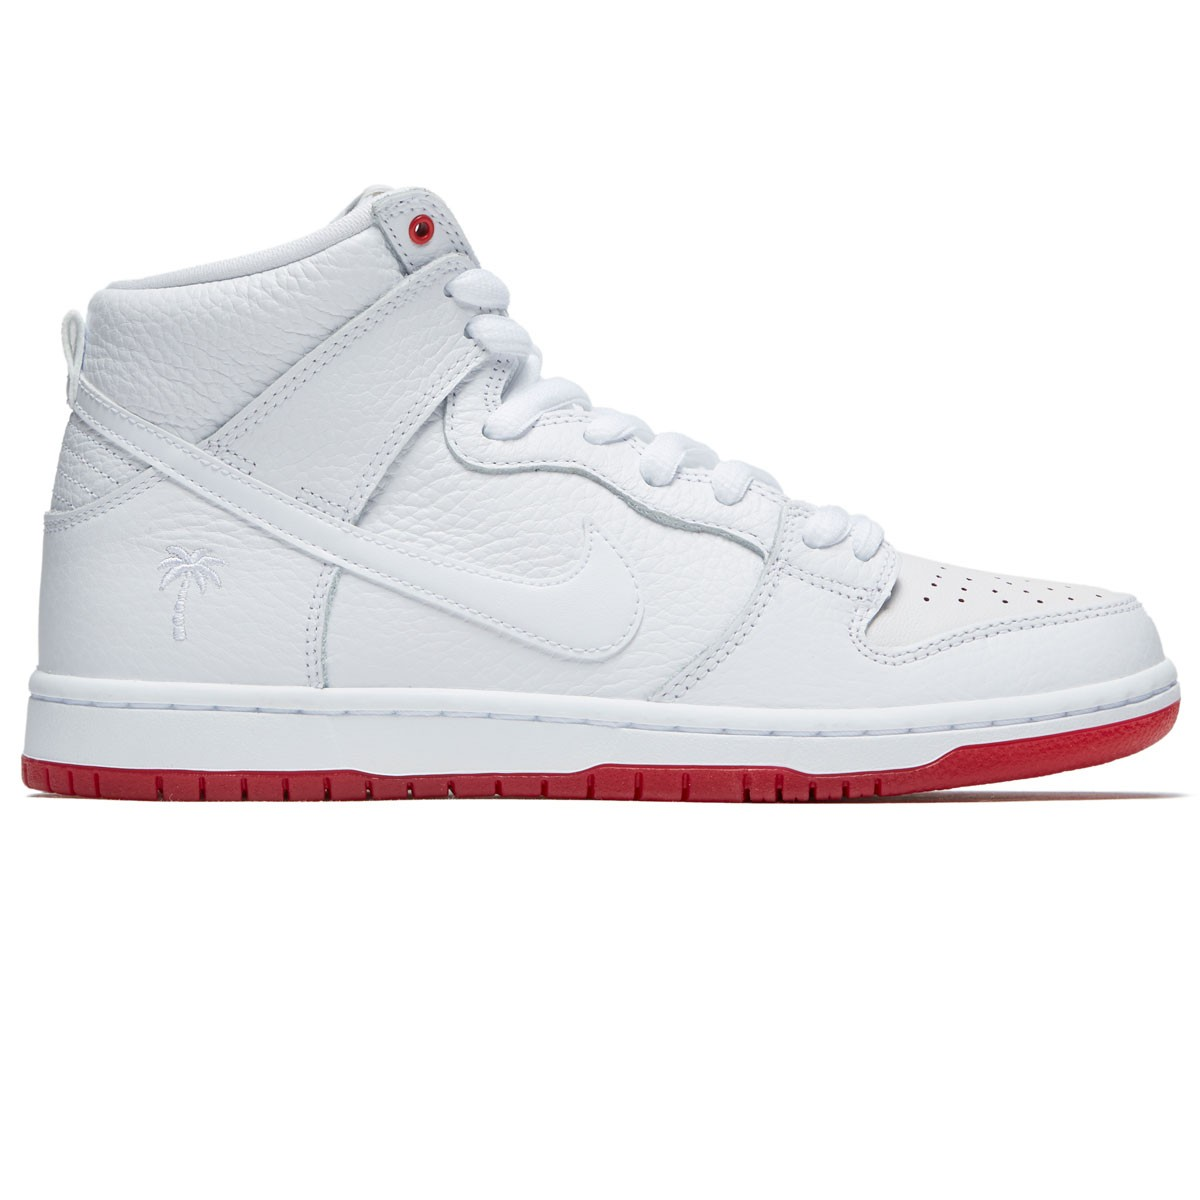 Nike SB Kevin Bradley Zoom Dunk High Pro QS Shoes - White White Red 1e853648c